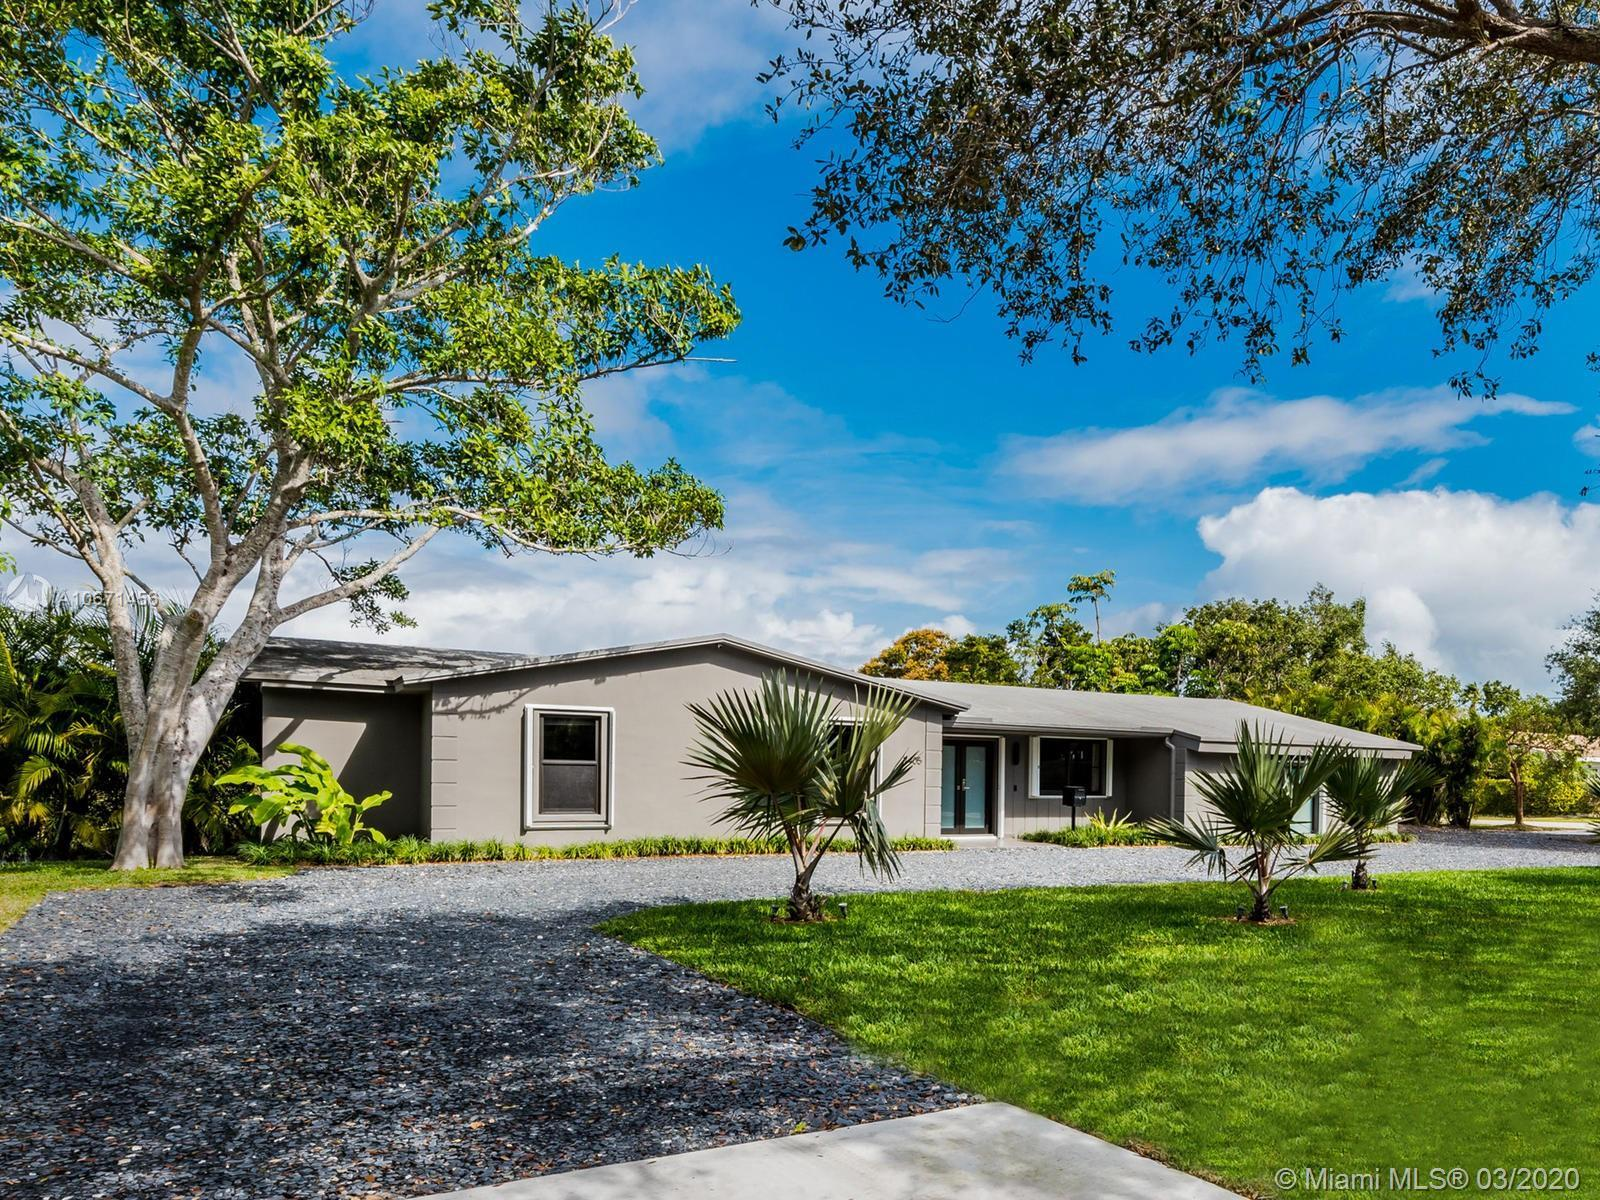 Gorgeous designer house on a 1 acre lot in one of the best school areas in Pinecrest. The house is c